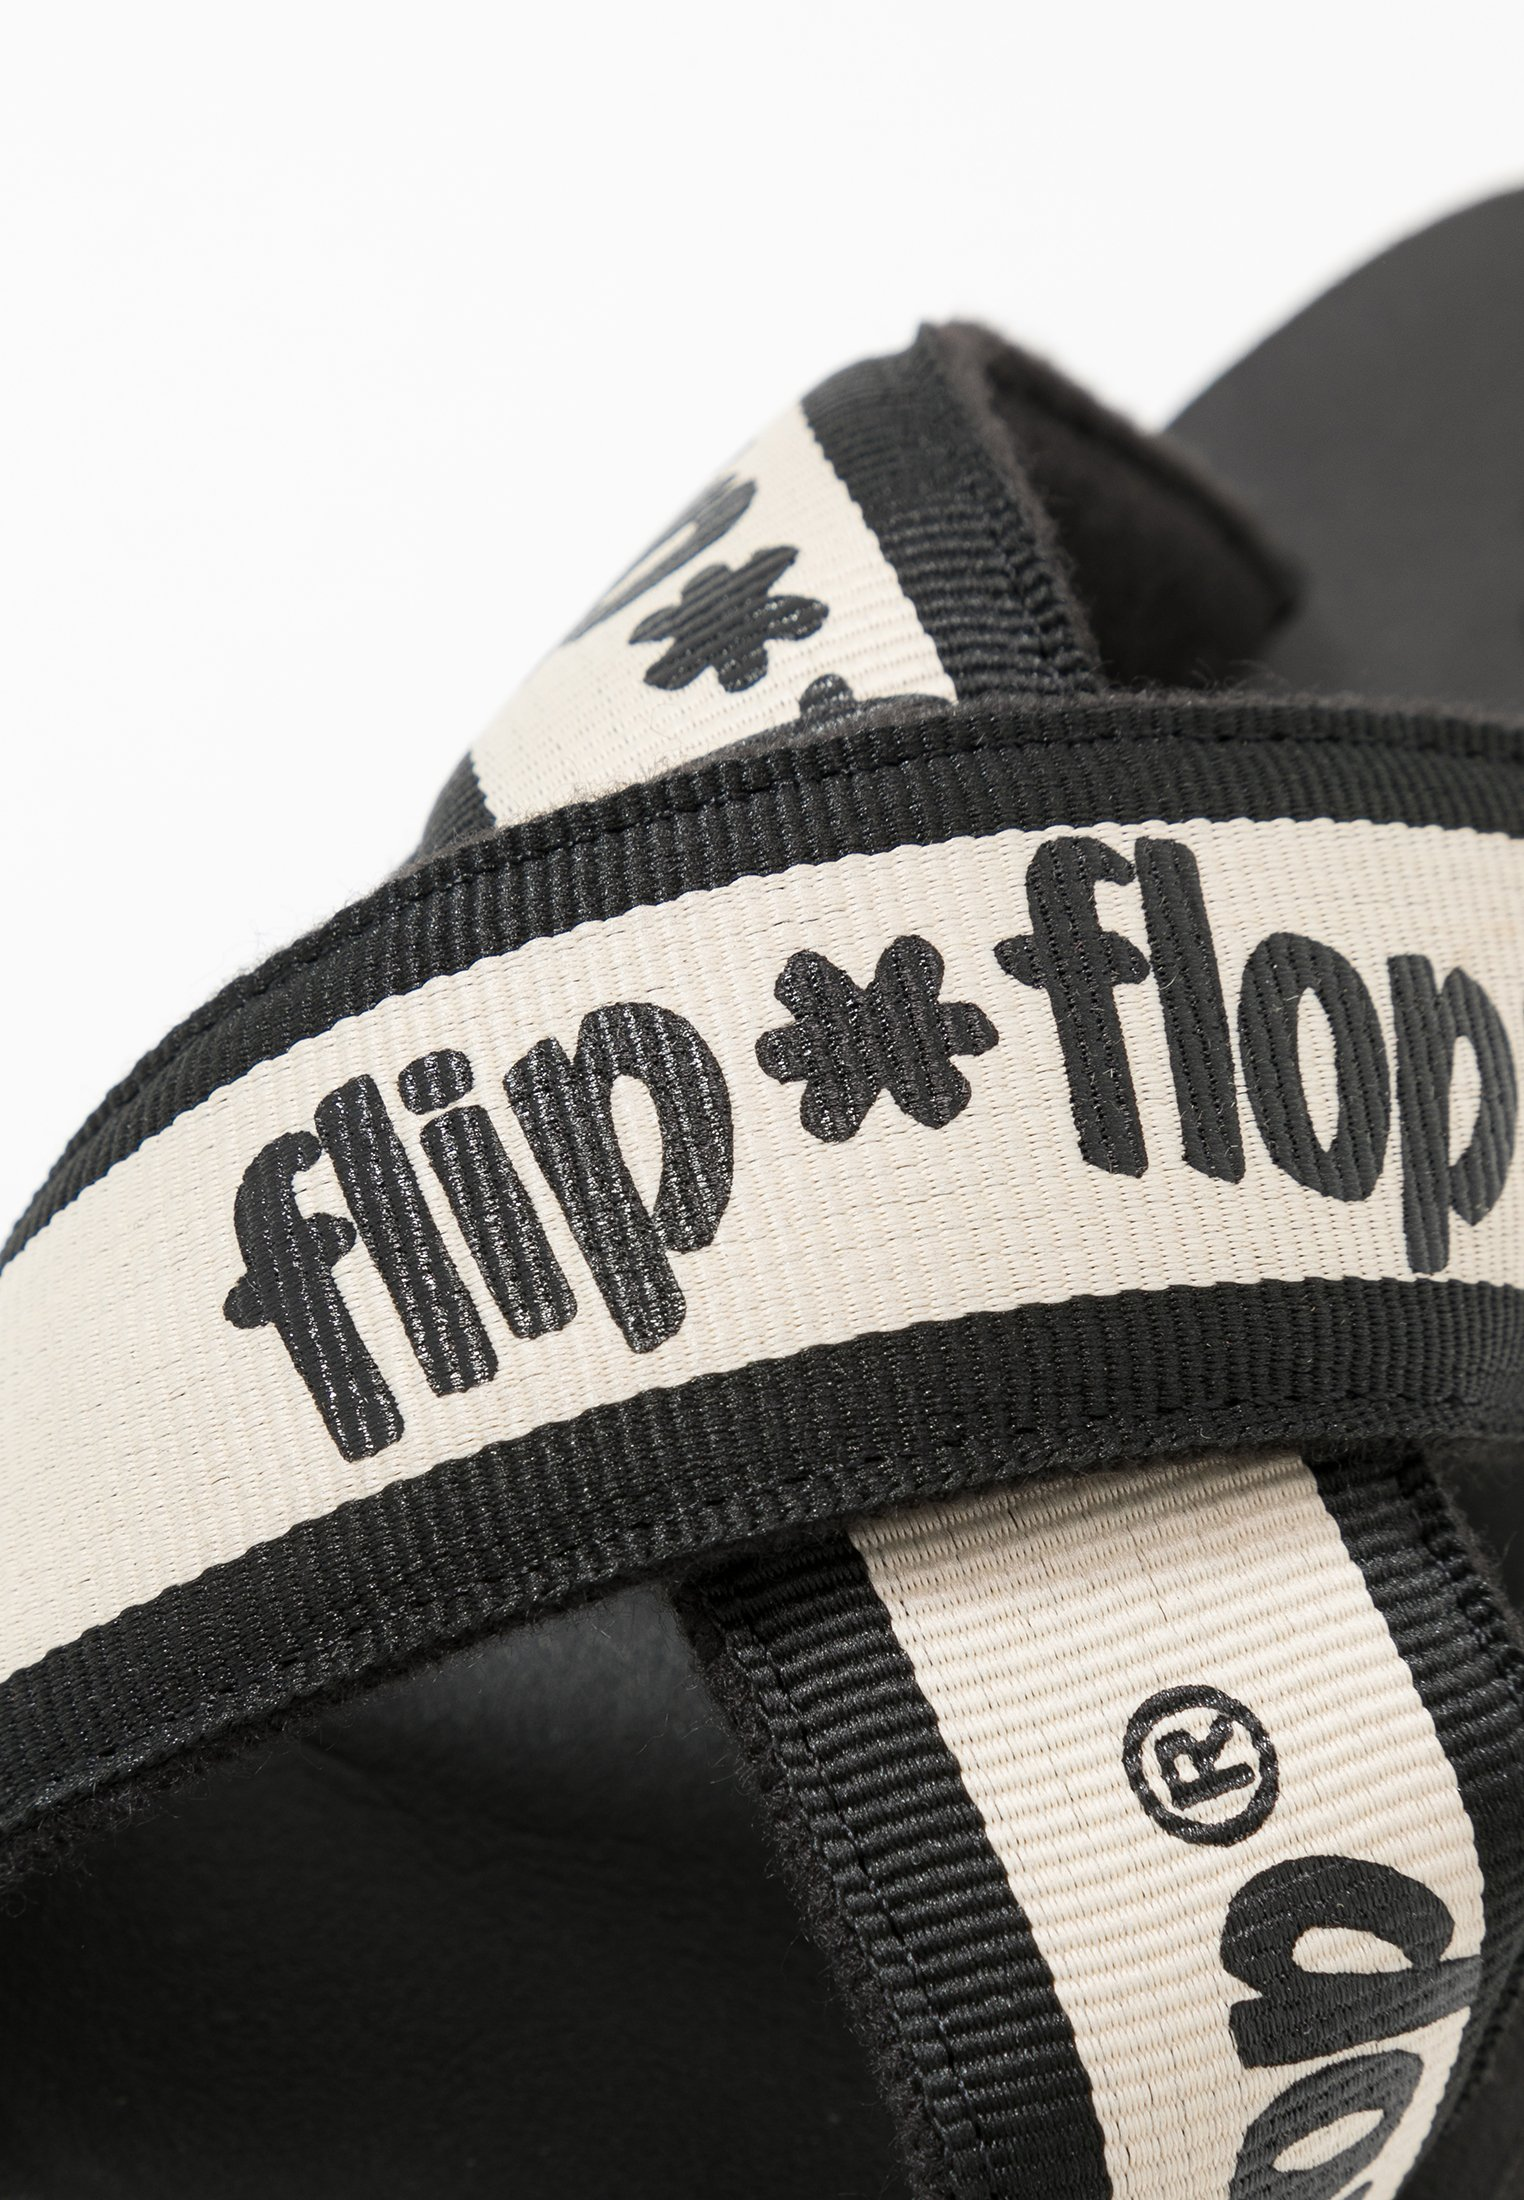 flop Tape HiMules Flip Cross Black srxhdCBtoQ